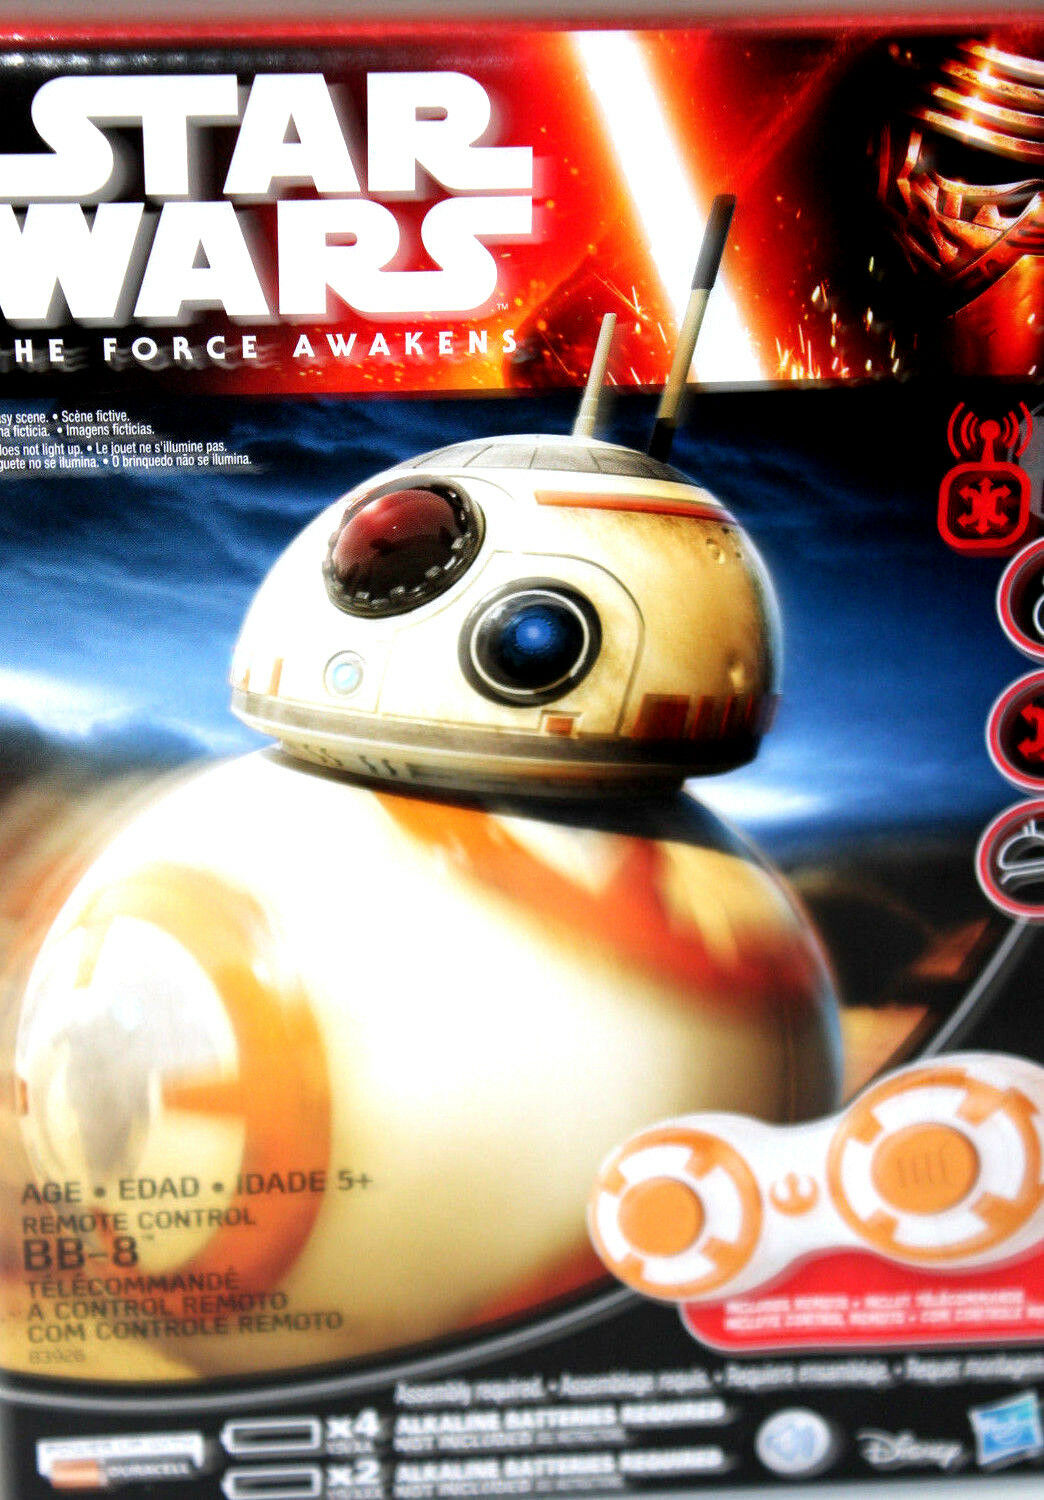 Star Wars The Force Awakens BB-8 Remote Control  Robot